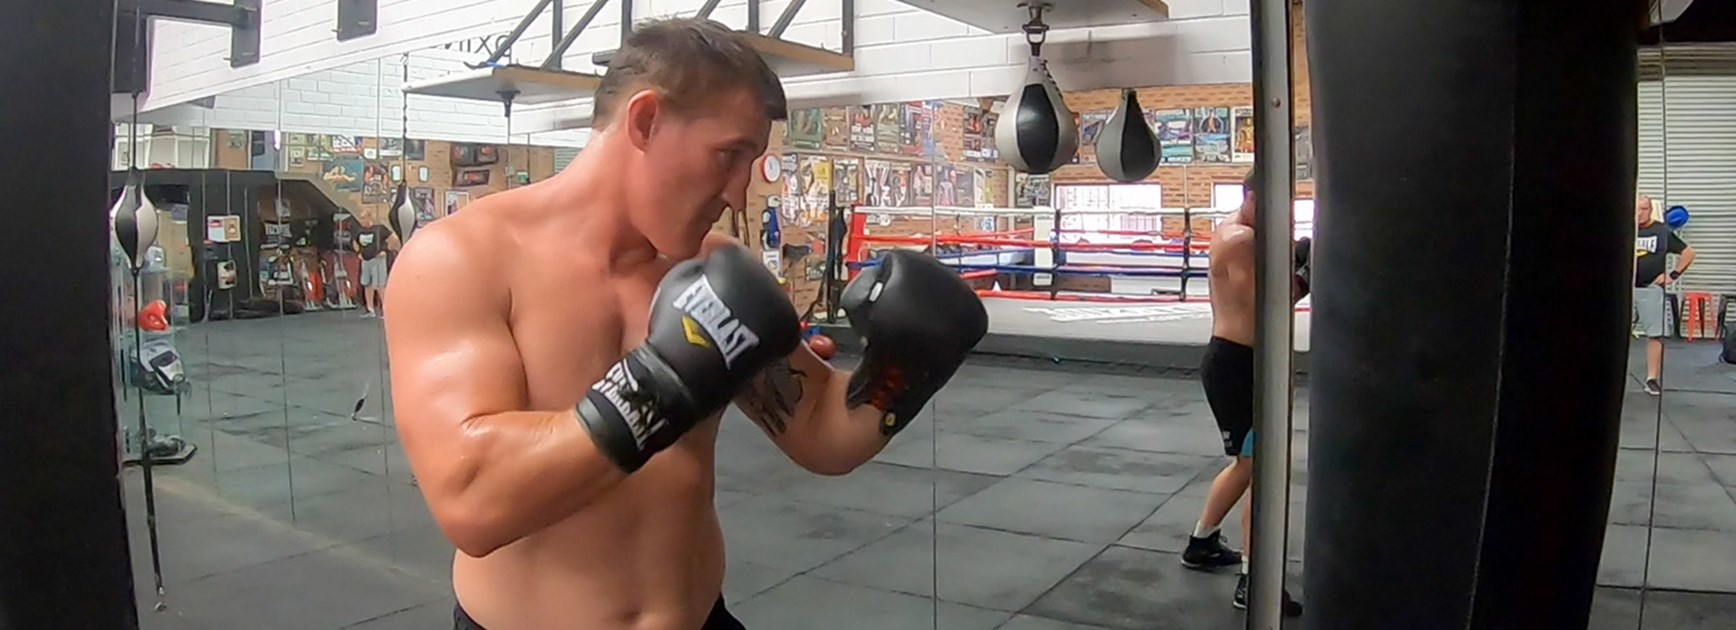 Gallen ready to rumble into 2019